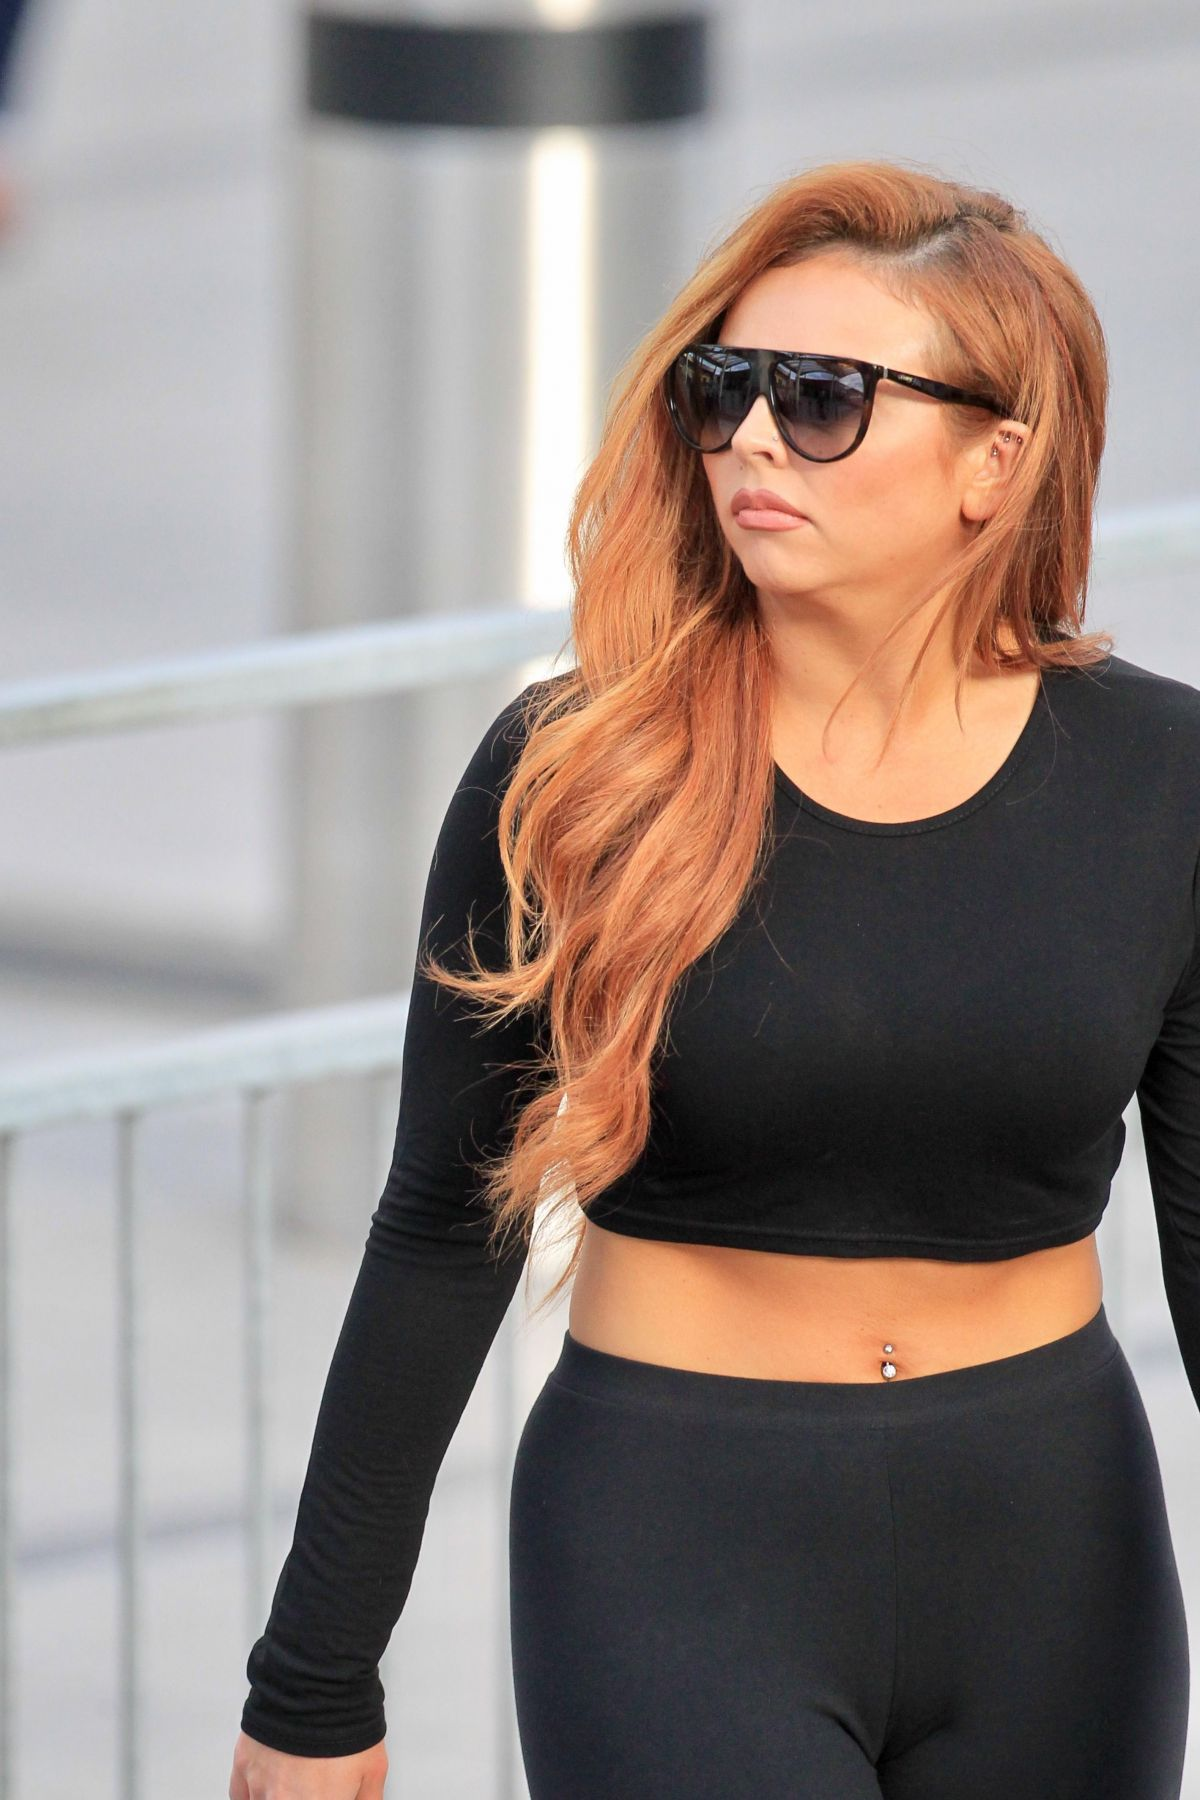 JESY NELSON at Heathrow Airport in London 04/17/2017